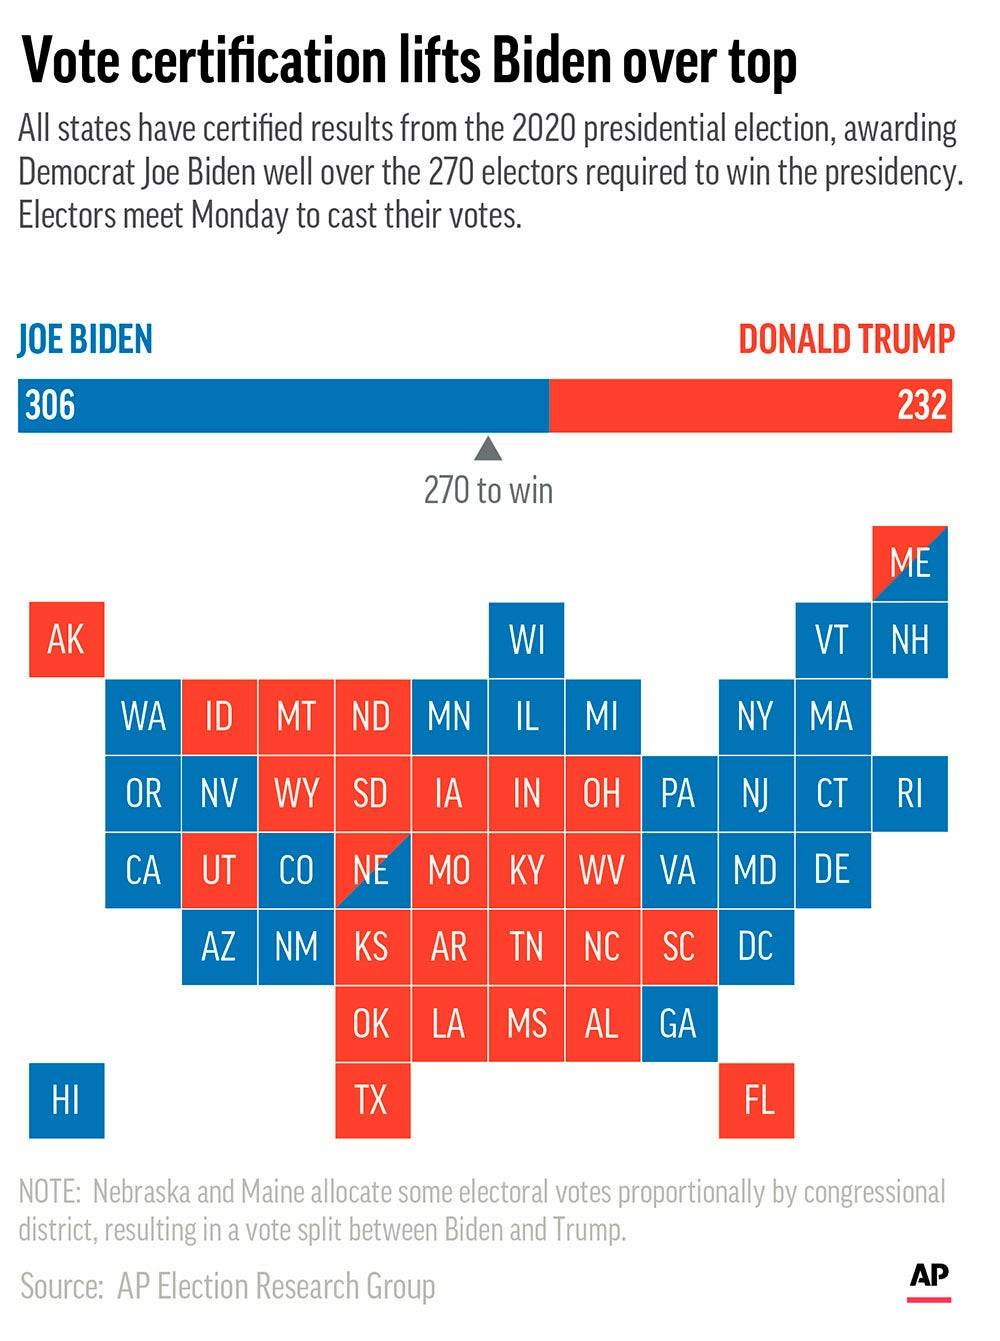 EXPLAINER: What's in store when the Electoral College meets Donald Trump electoral college Joe Biden voters vote